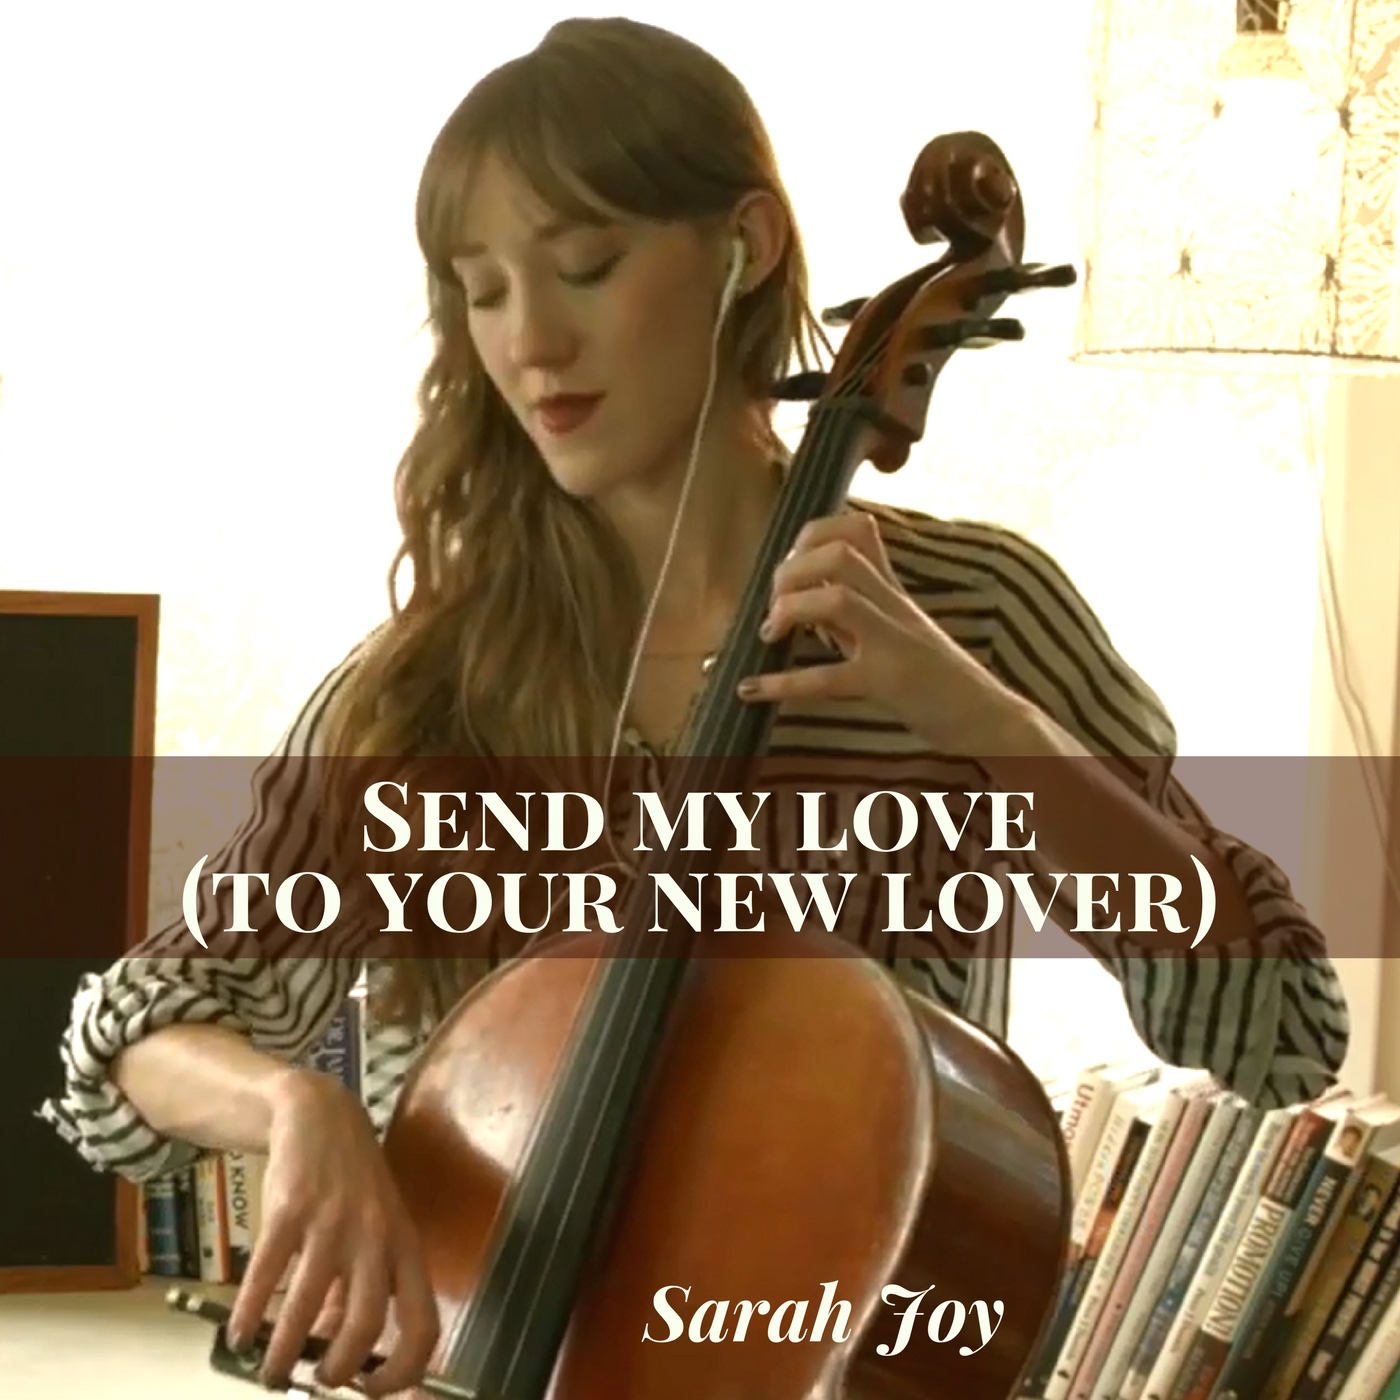 Send My Love (To Your New Lover) - Cello Version